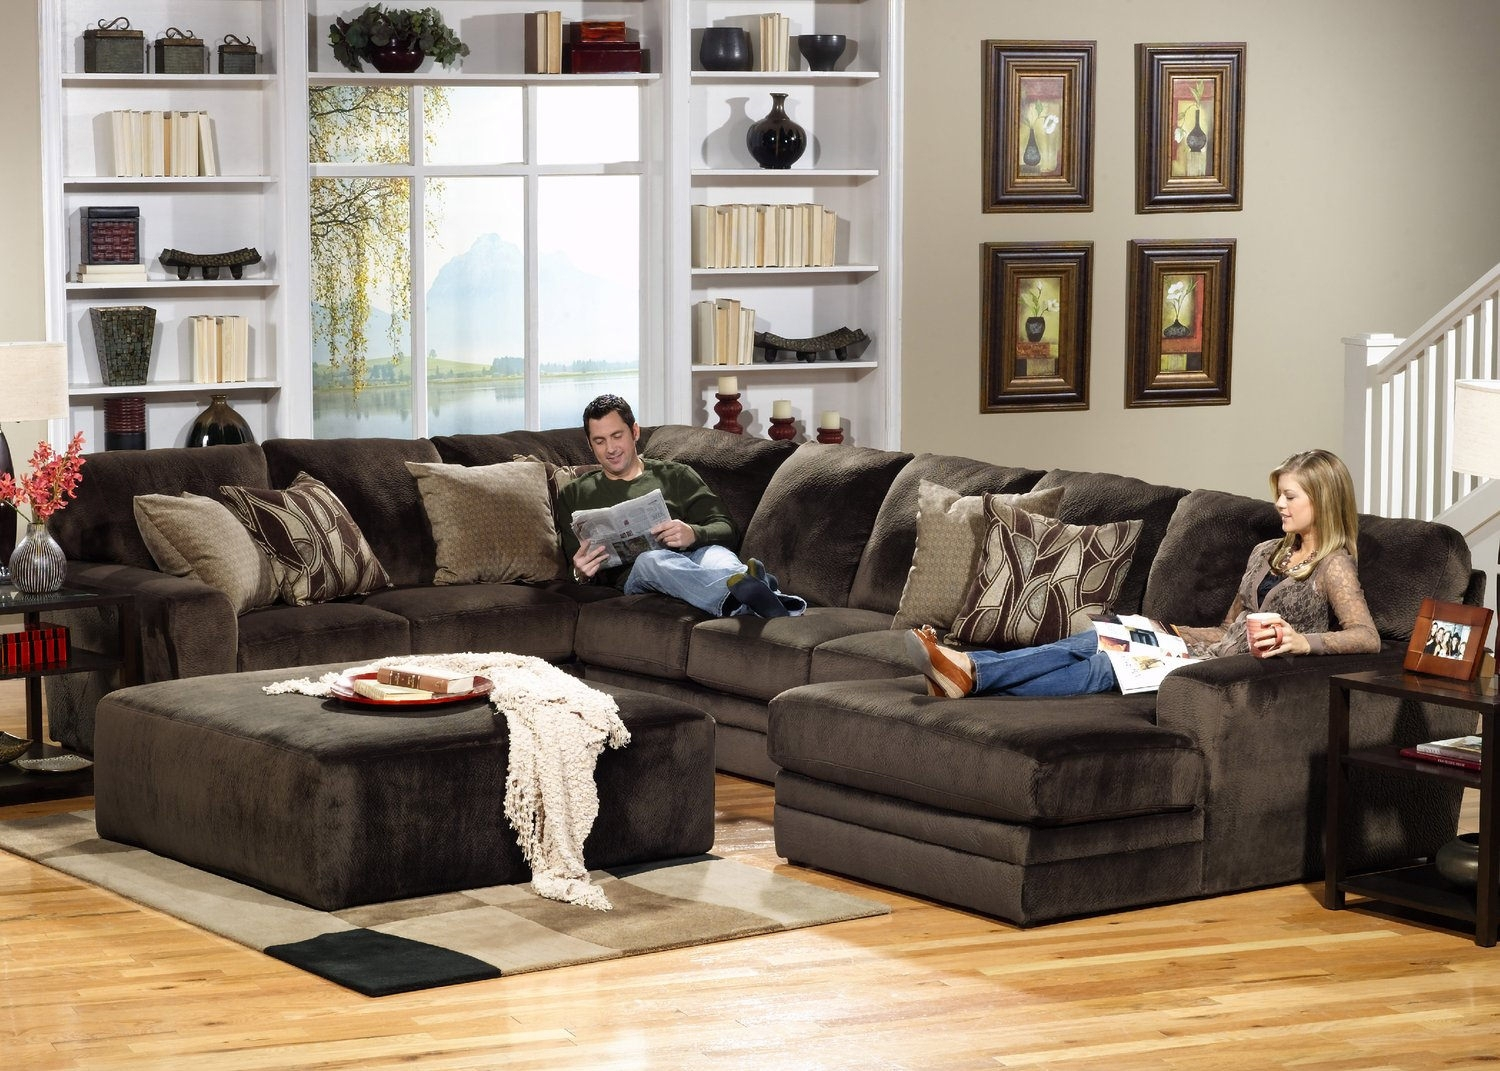 Sectional Sofas – Living Room Seating – Hom Furniture Within Duluth Mn Sectional Sofas (Image 6 of 10)